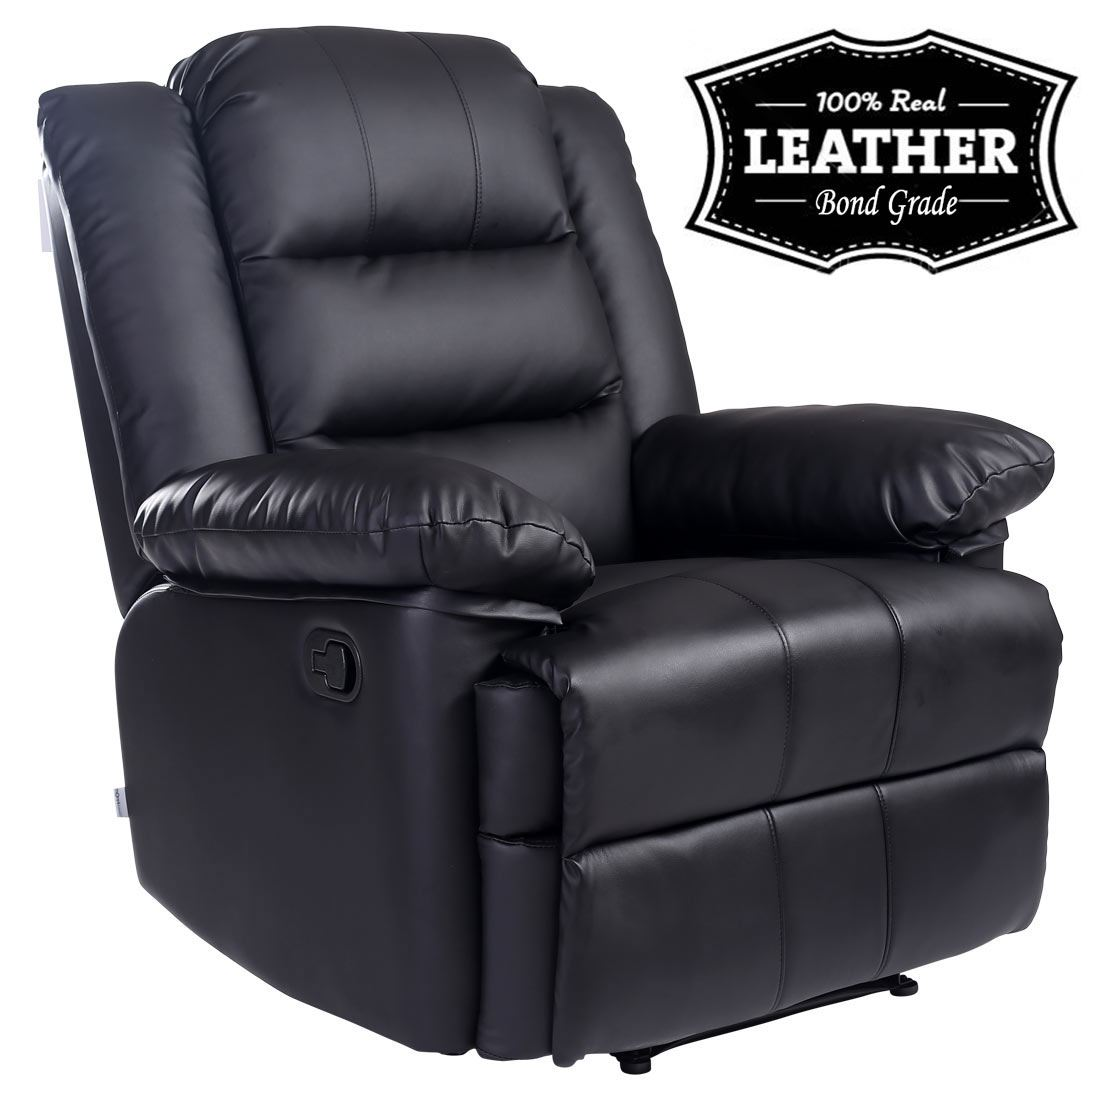 recliner gaming chair physio ball base loxley black leather armchair sofa home lounge